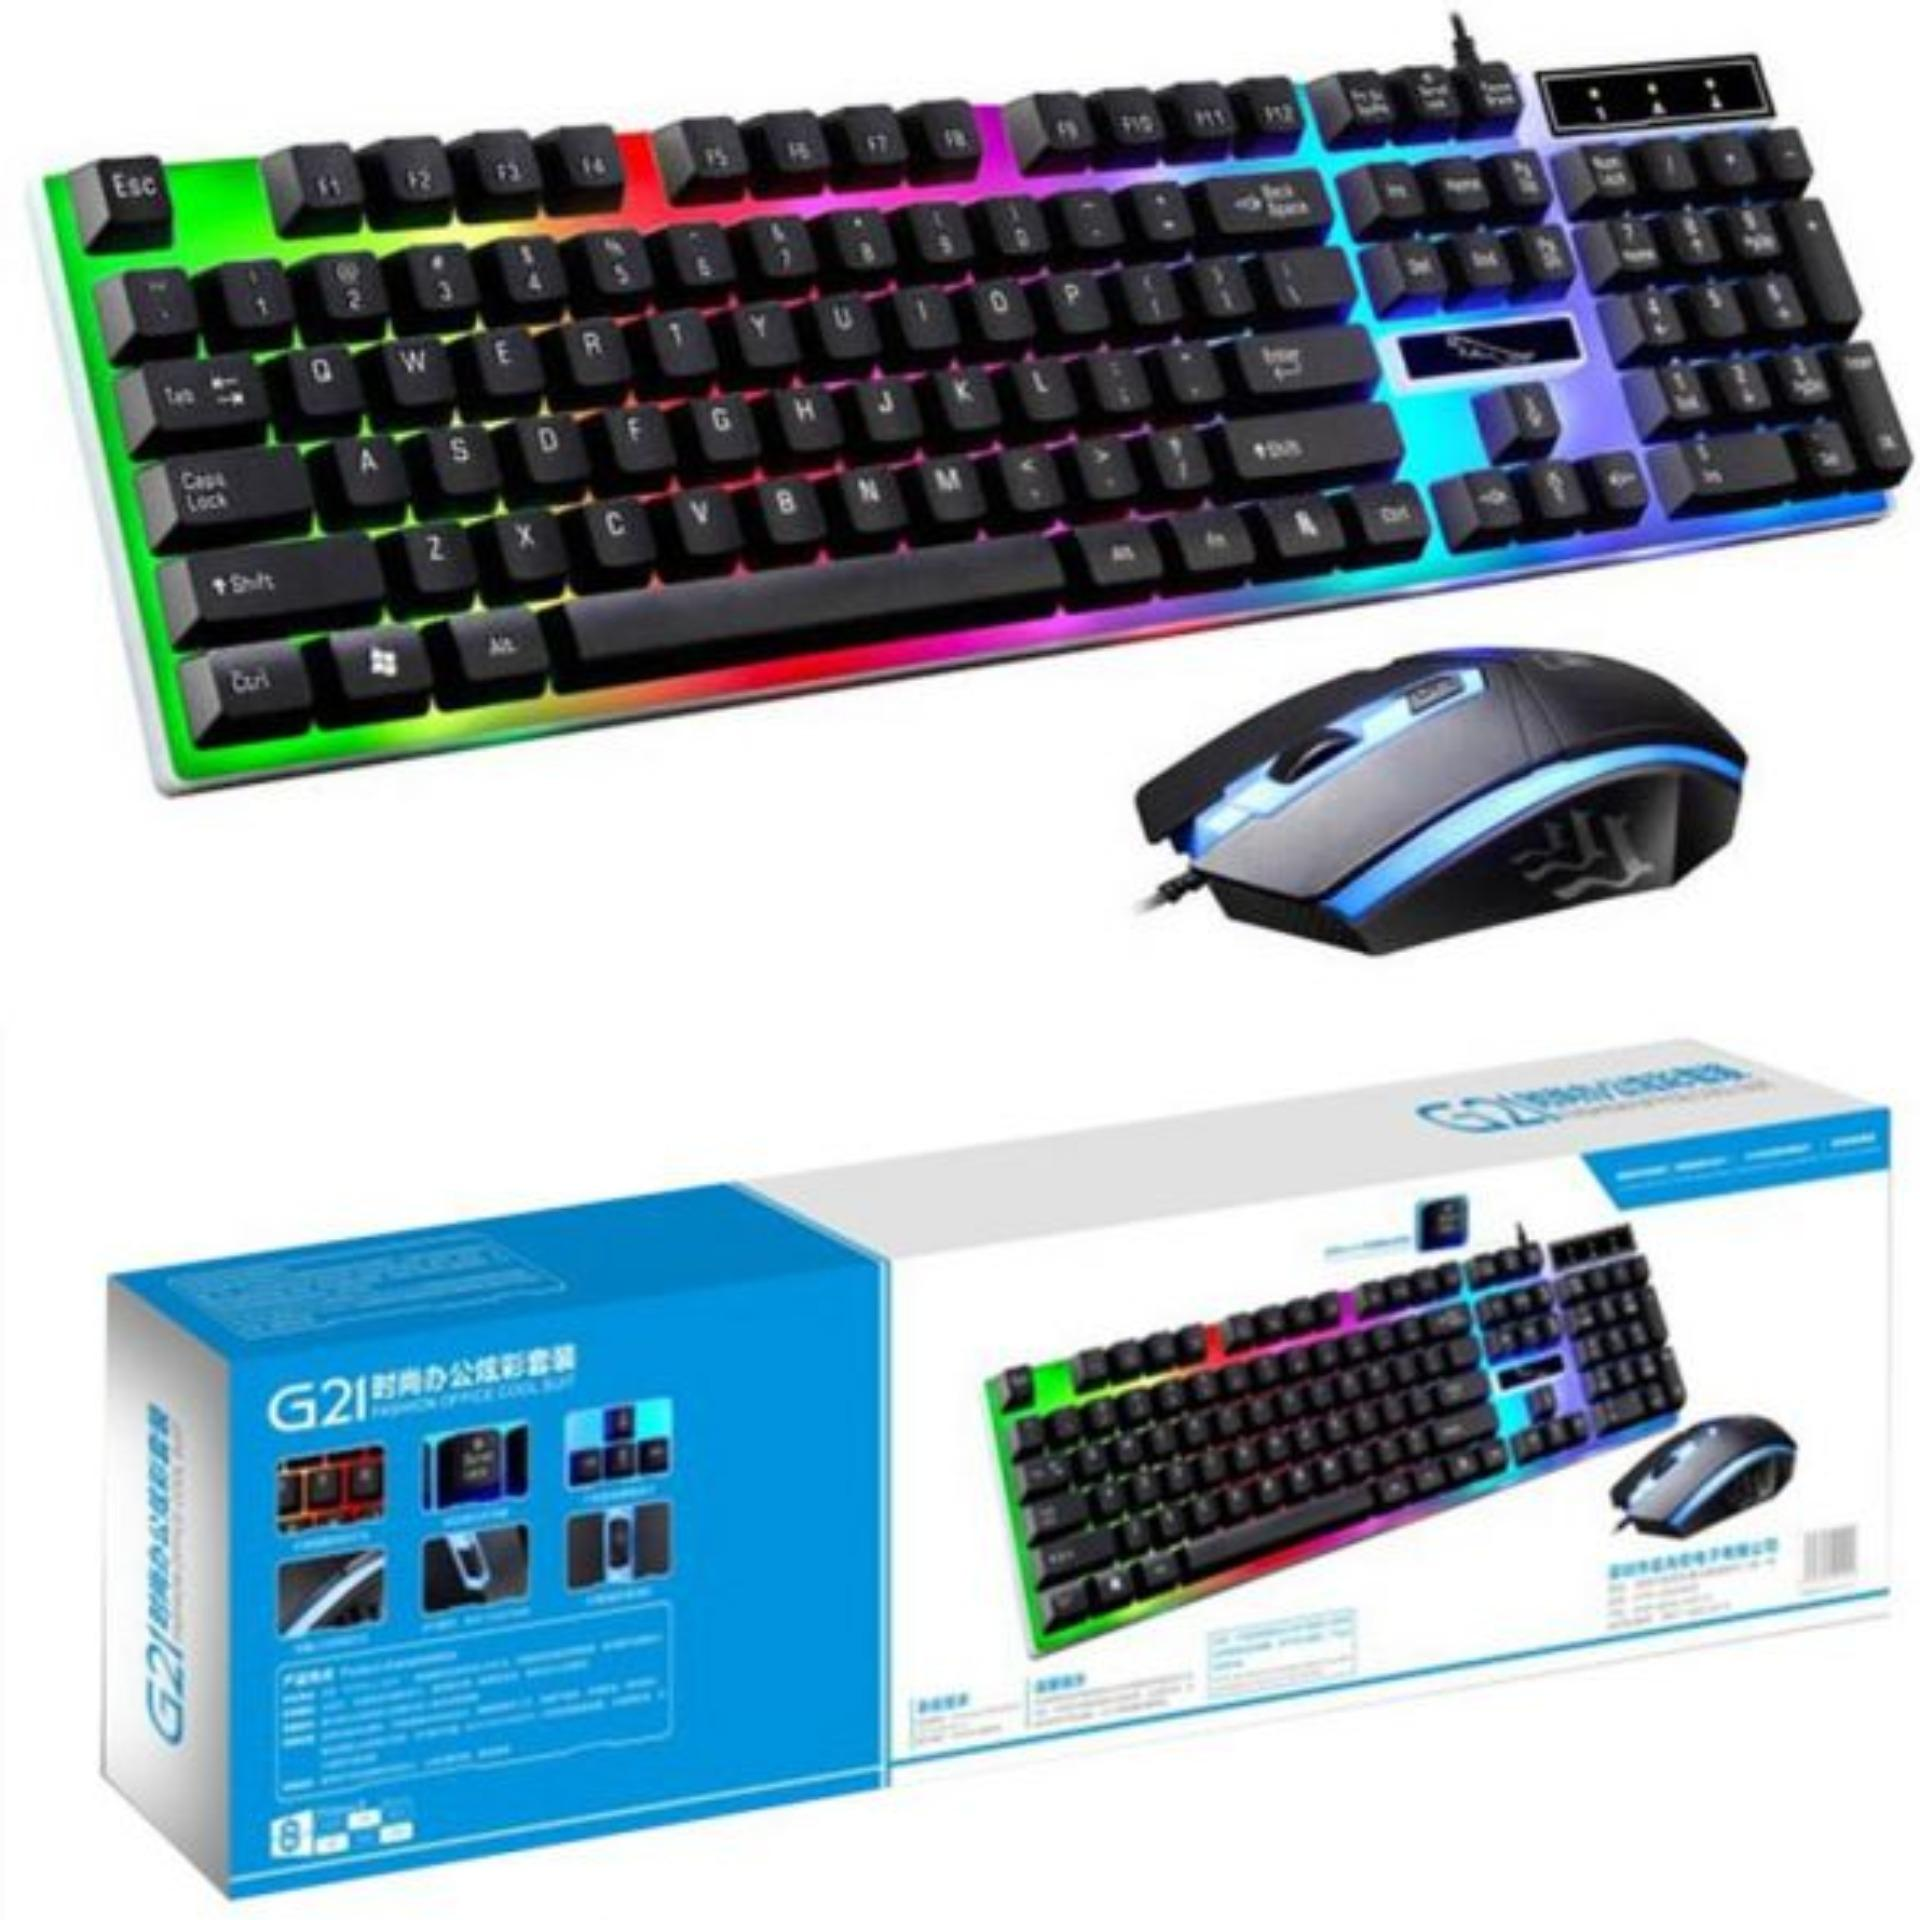 Gaming Keyboards For Sale Prices Brands Keybiard Warwolf Led Keyboard W Mouse